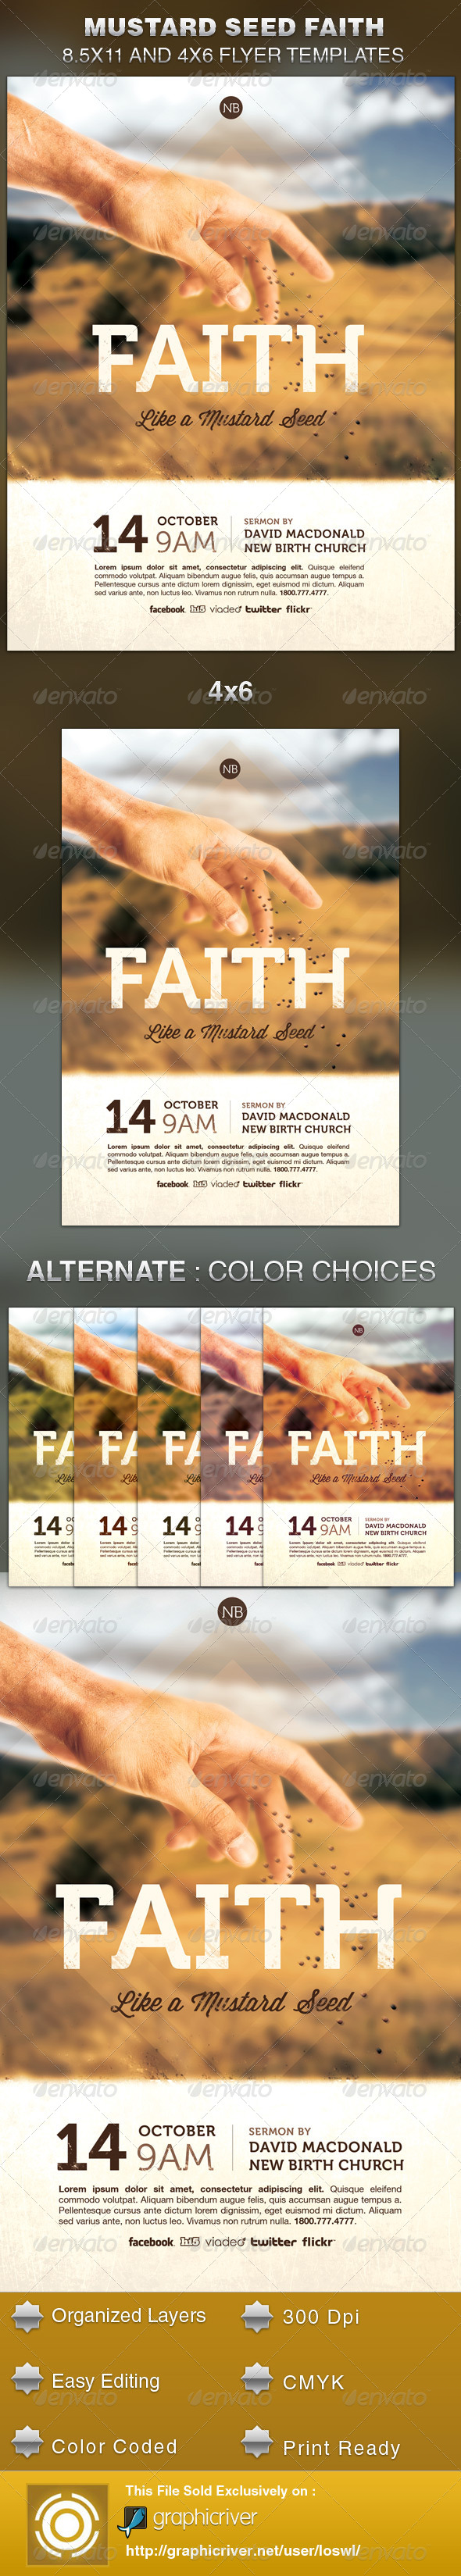 GraphicRiver Mustard Seed Faith Church Flyer Template 5830399